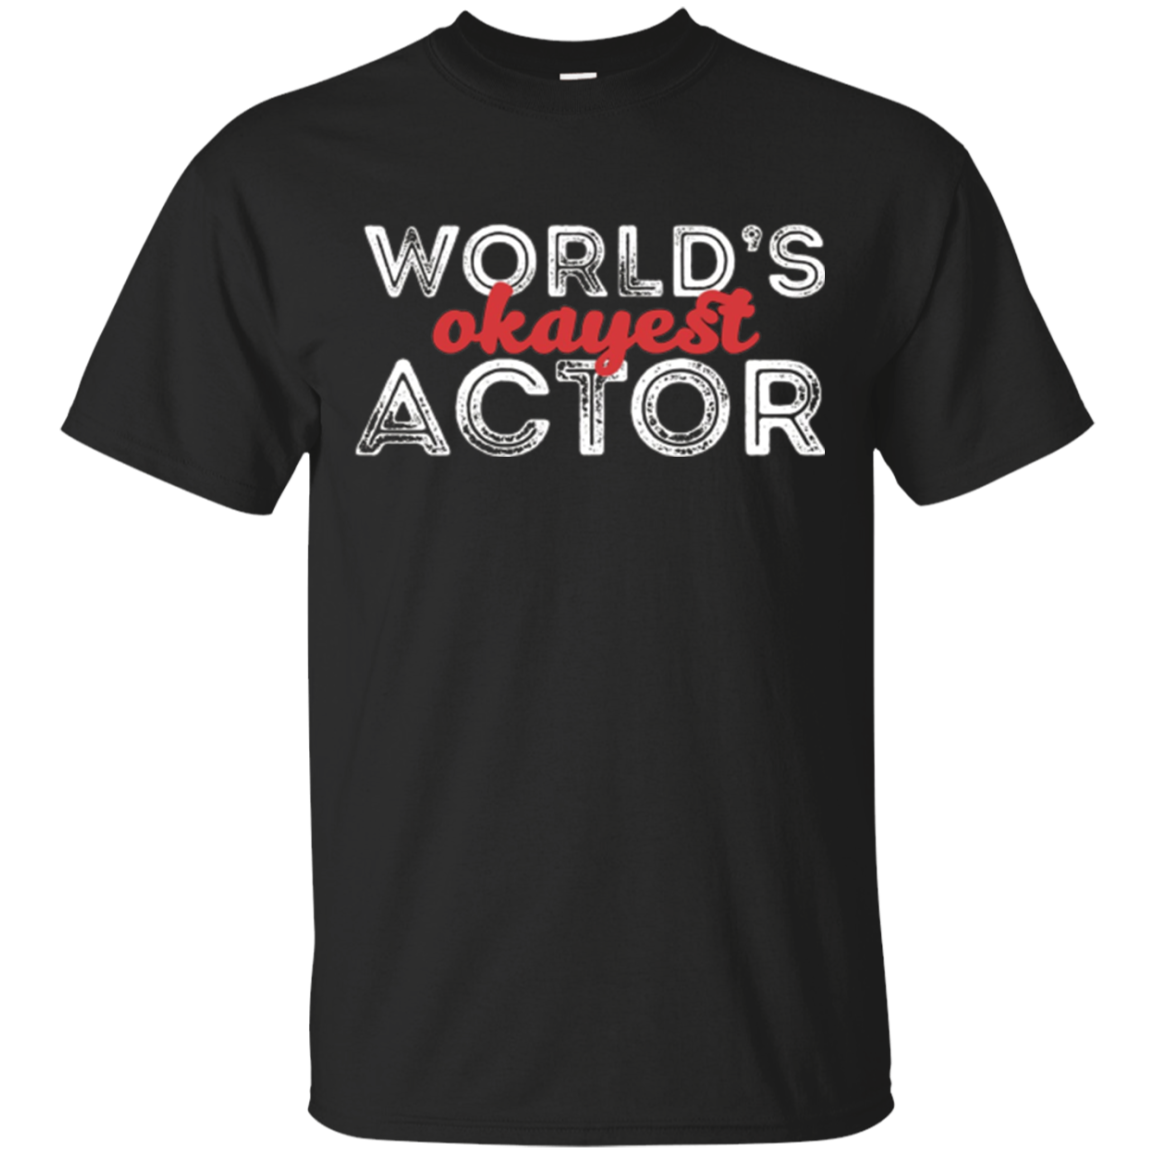 Actor T-shirt - World's okayest actor